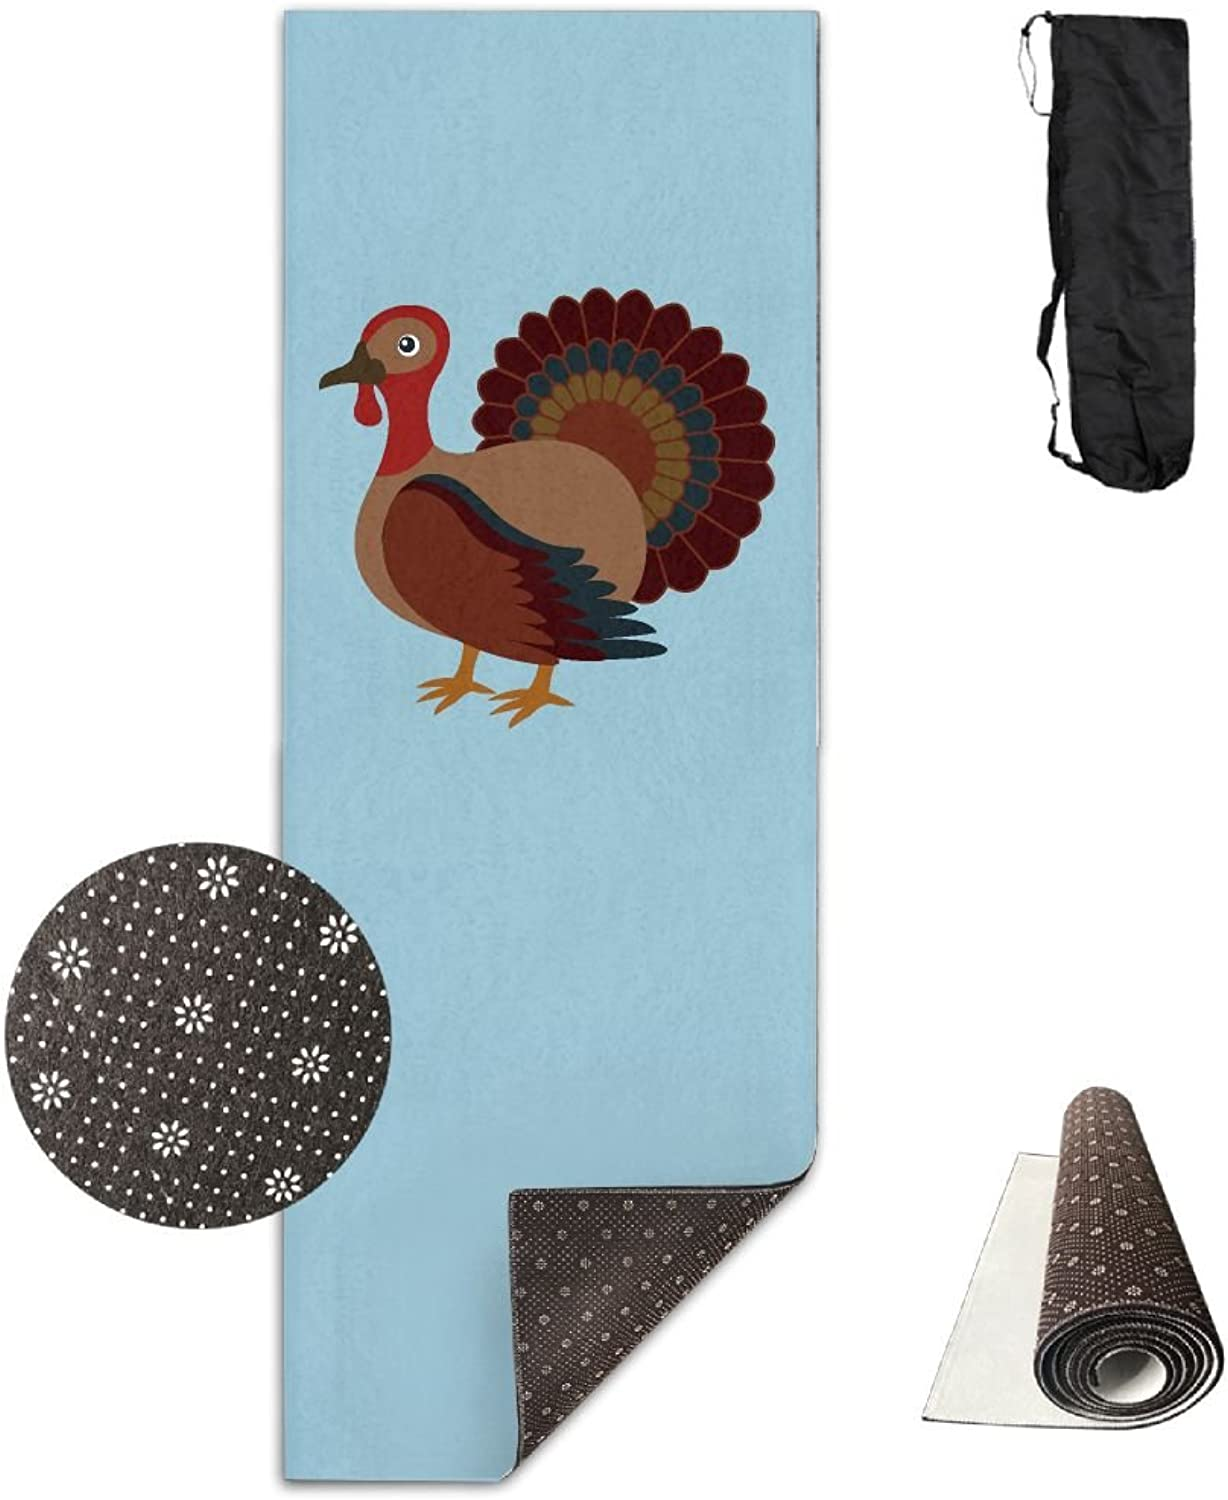 ZSQZSQ Unisex Non Slip Comfort Washable Thanksgiving Day Turkey blueee Yoga Mat,Pilates & Fitness Exercise Mats with Carrying Strap,Thick High Density Mat,for Yoga,Pilates,Exercise and Workouts